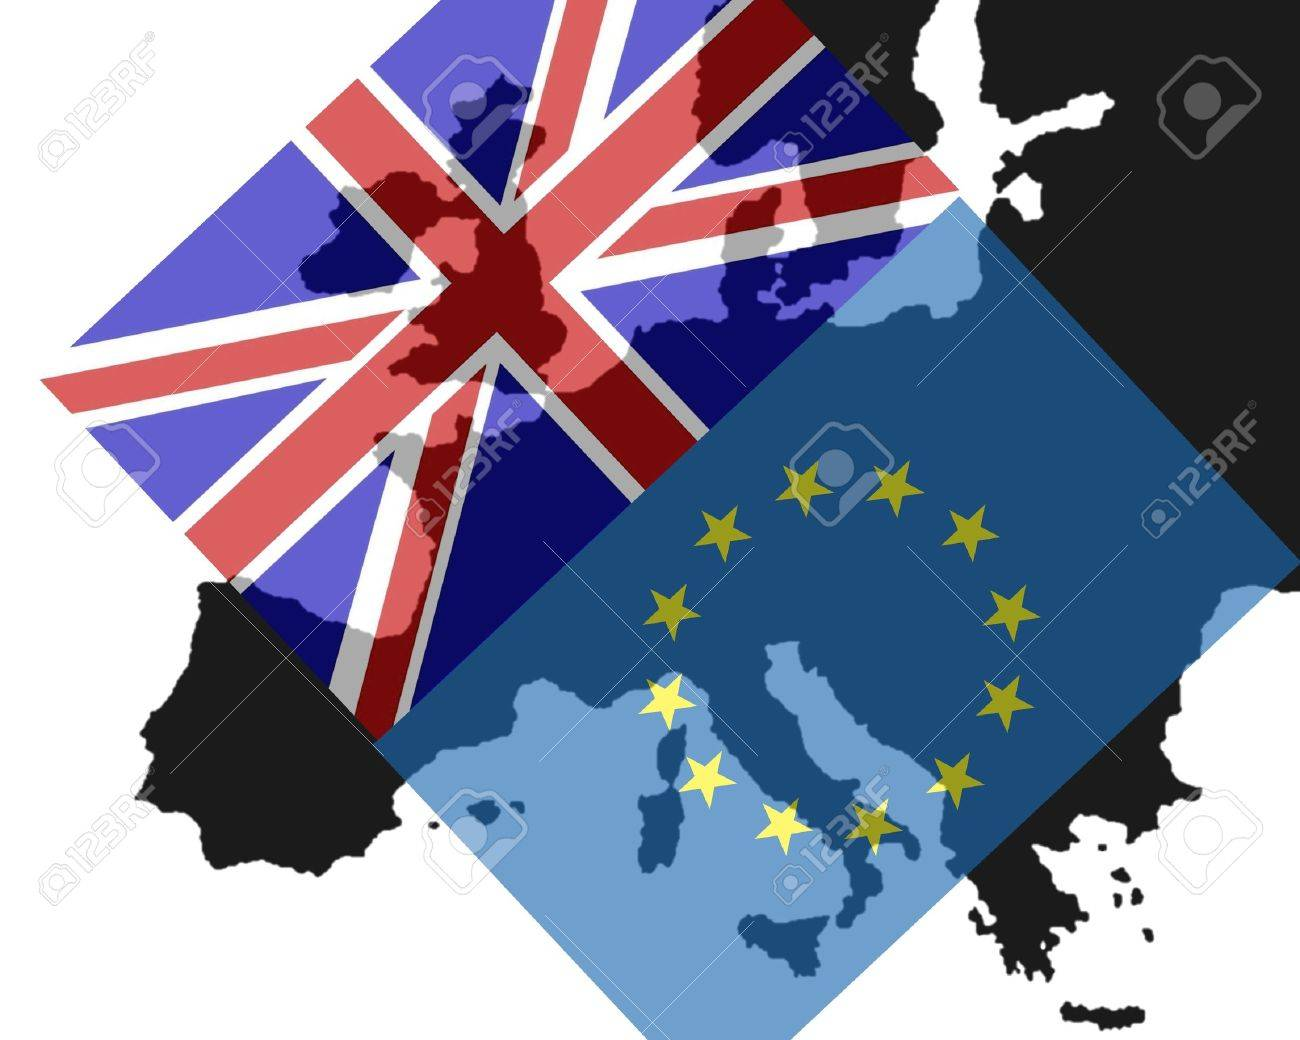 Power Struggle Between the UK and Europe The flags of Britain and Europe make the contours of Europe show through - 40649819